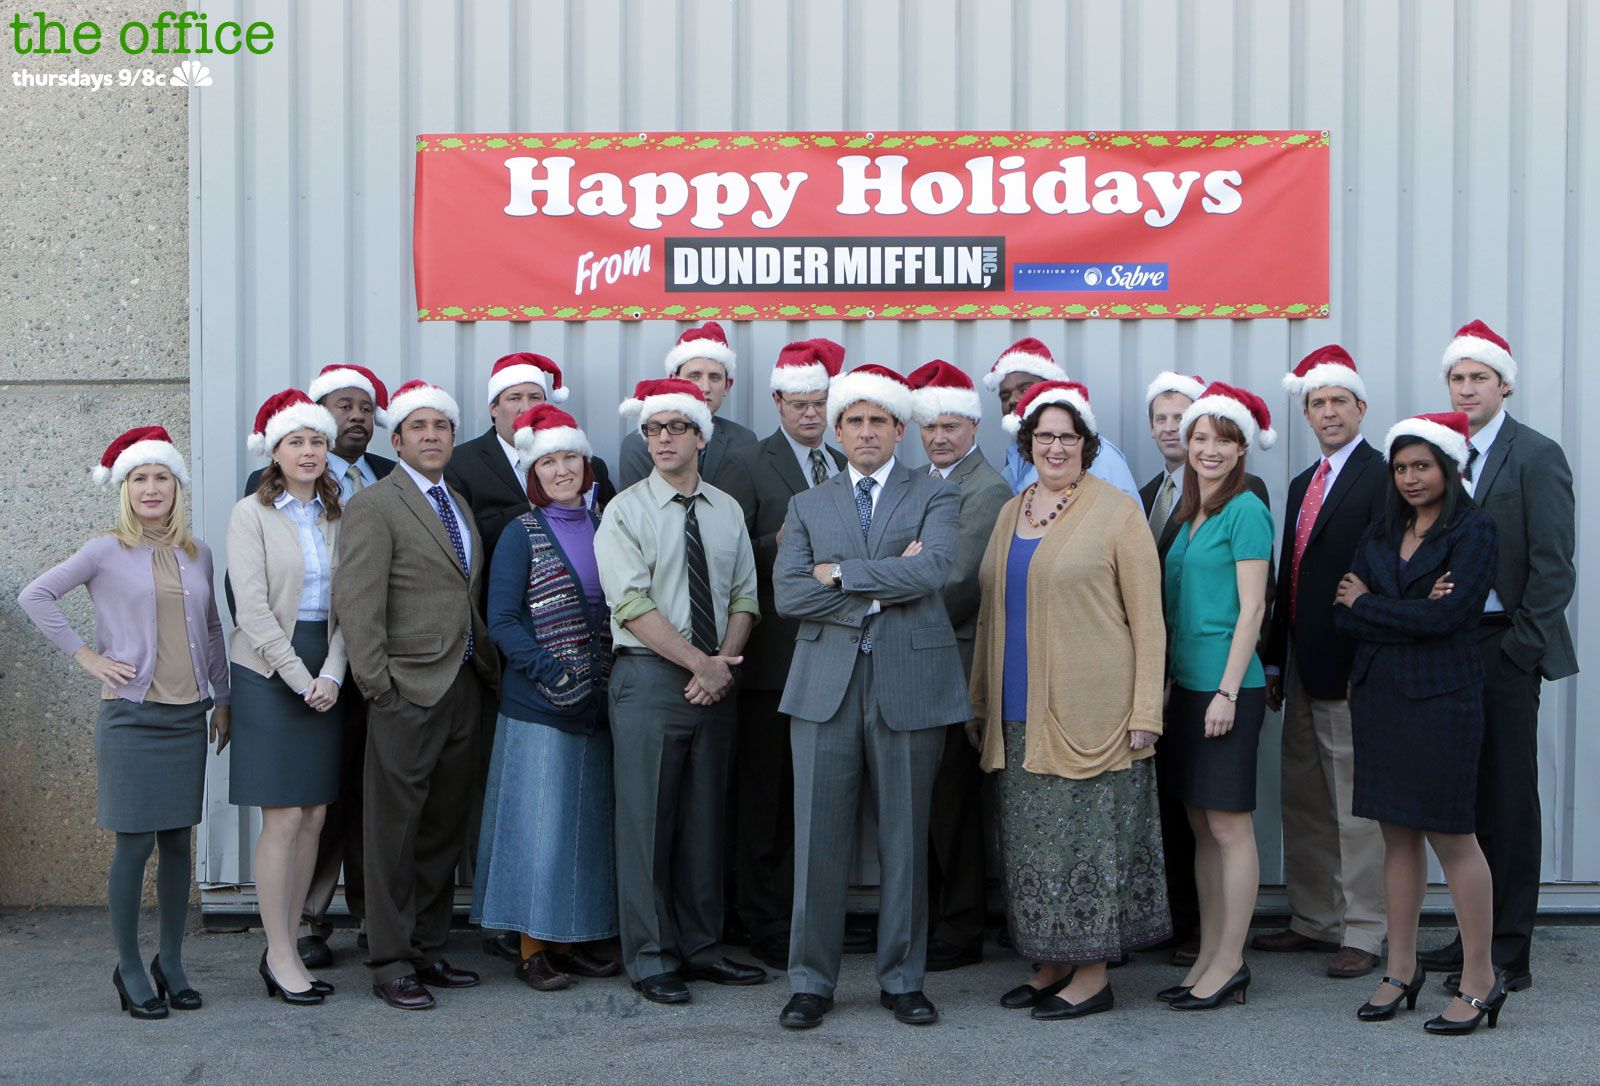 christmas office photo google search office christmas classy christmas merry christmas christmas - Classy Christmas The Office